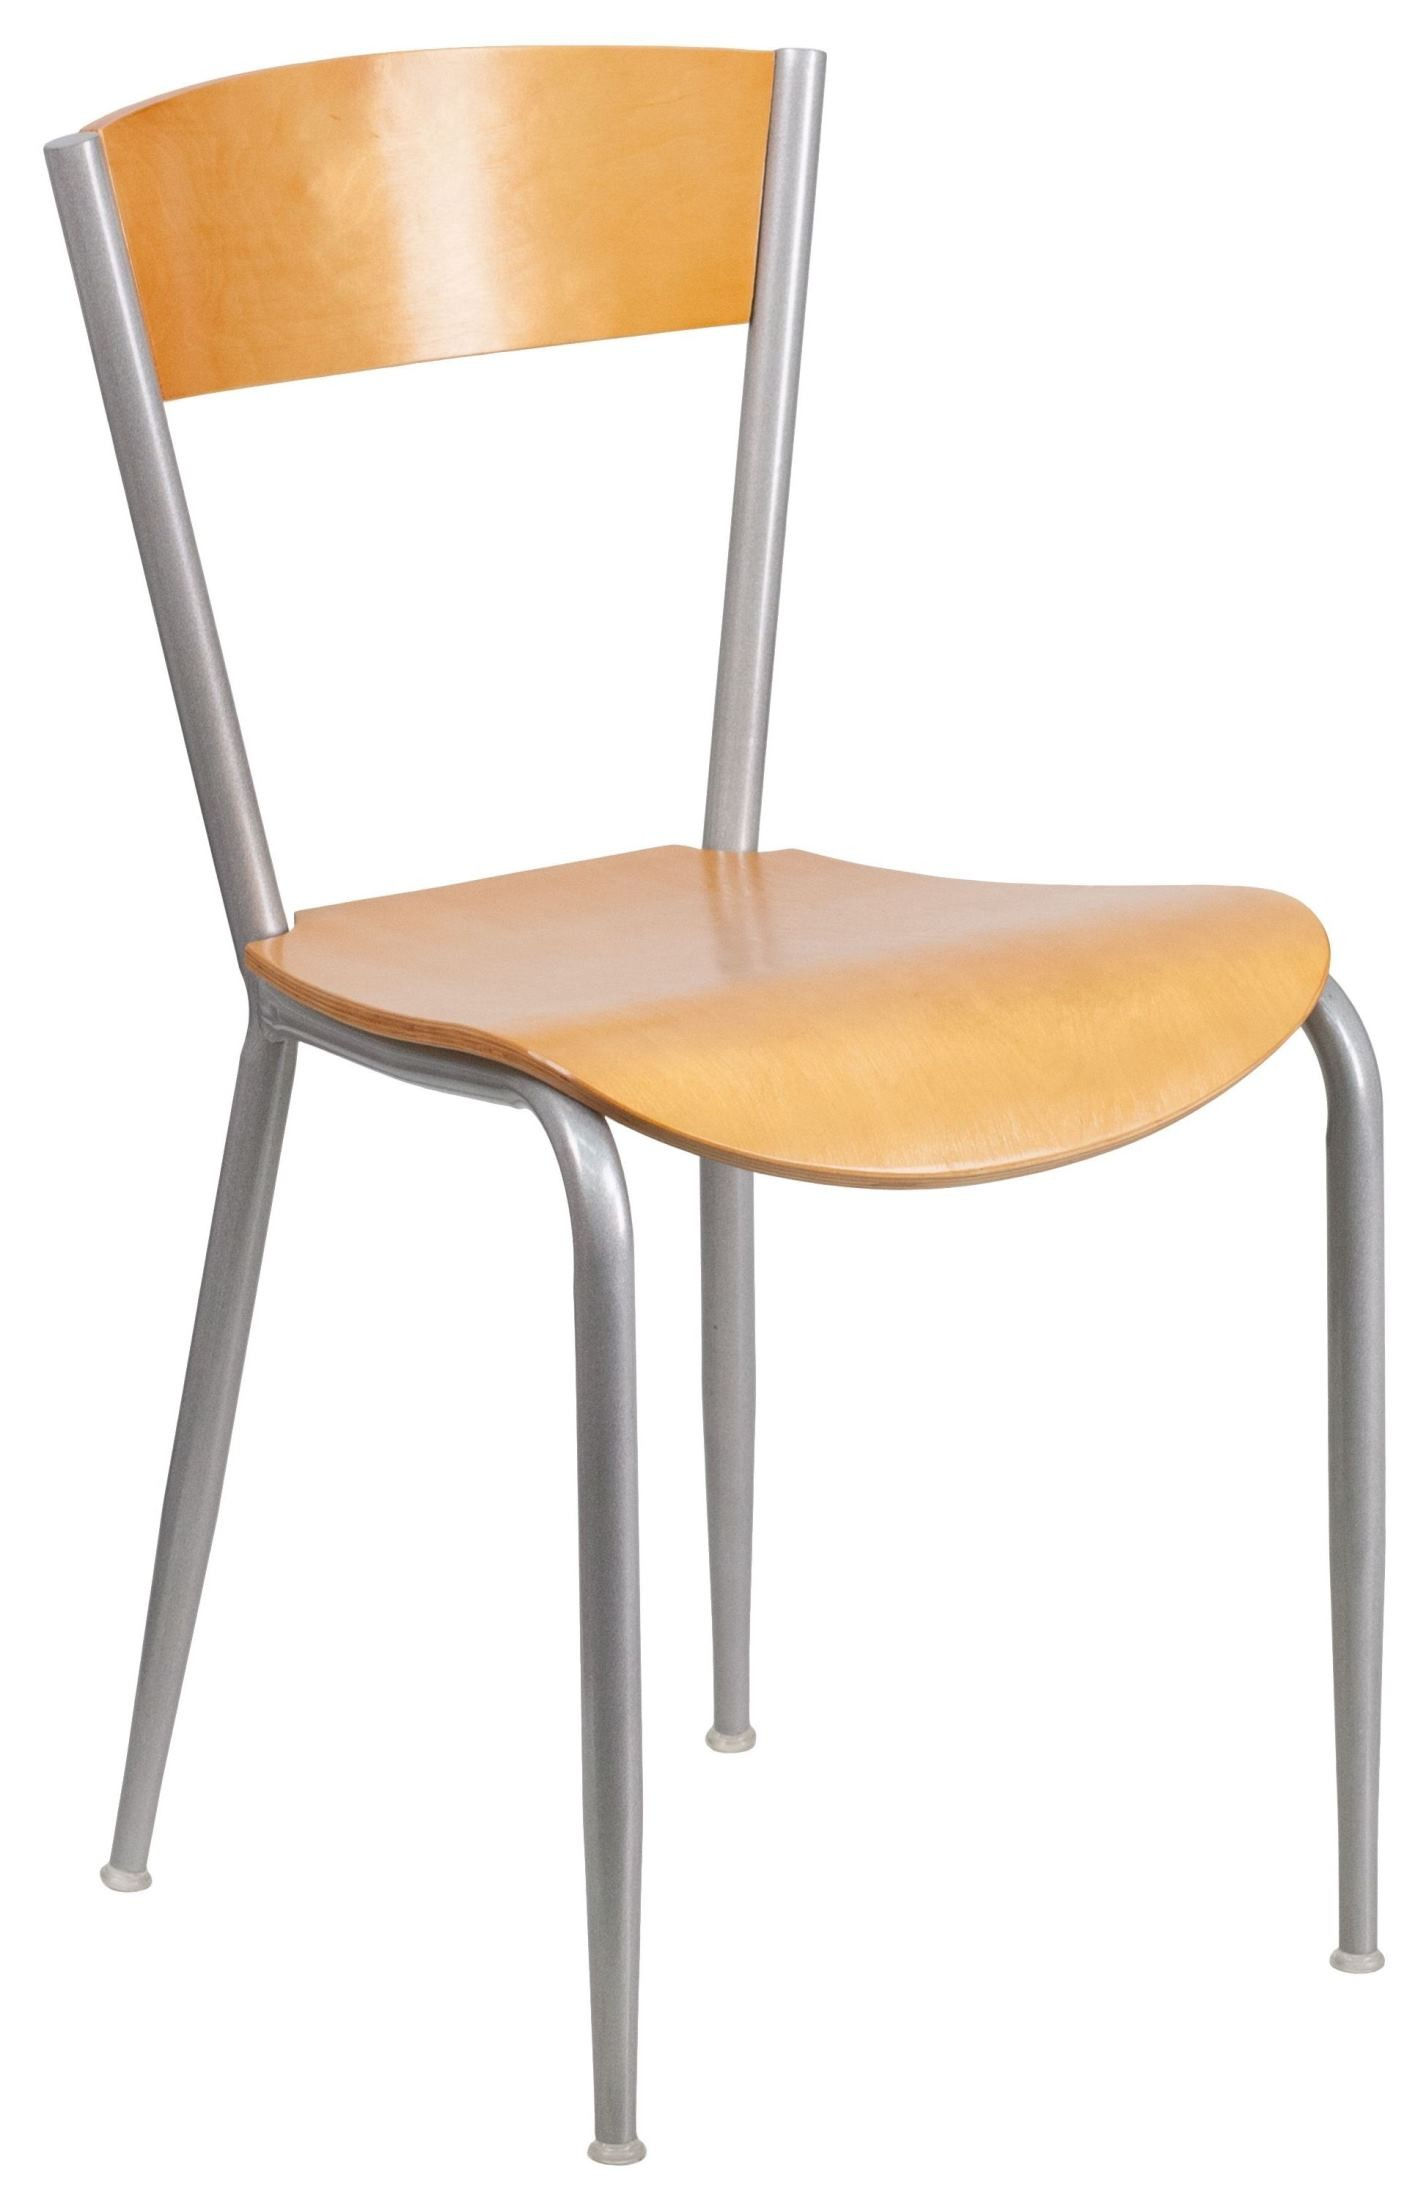 Invincible Series Natural Wood Back Metal Restaurant Chair From Renegade Xu Dg 60217 Nat Gg